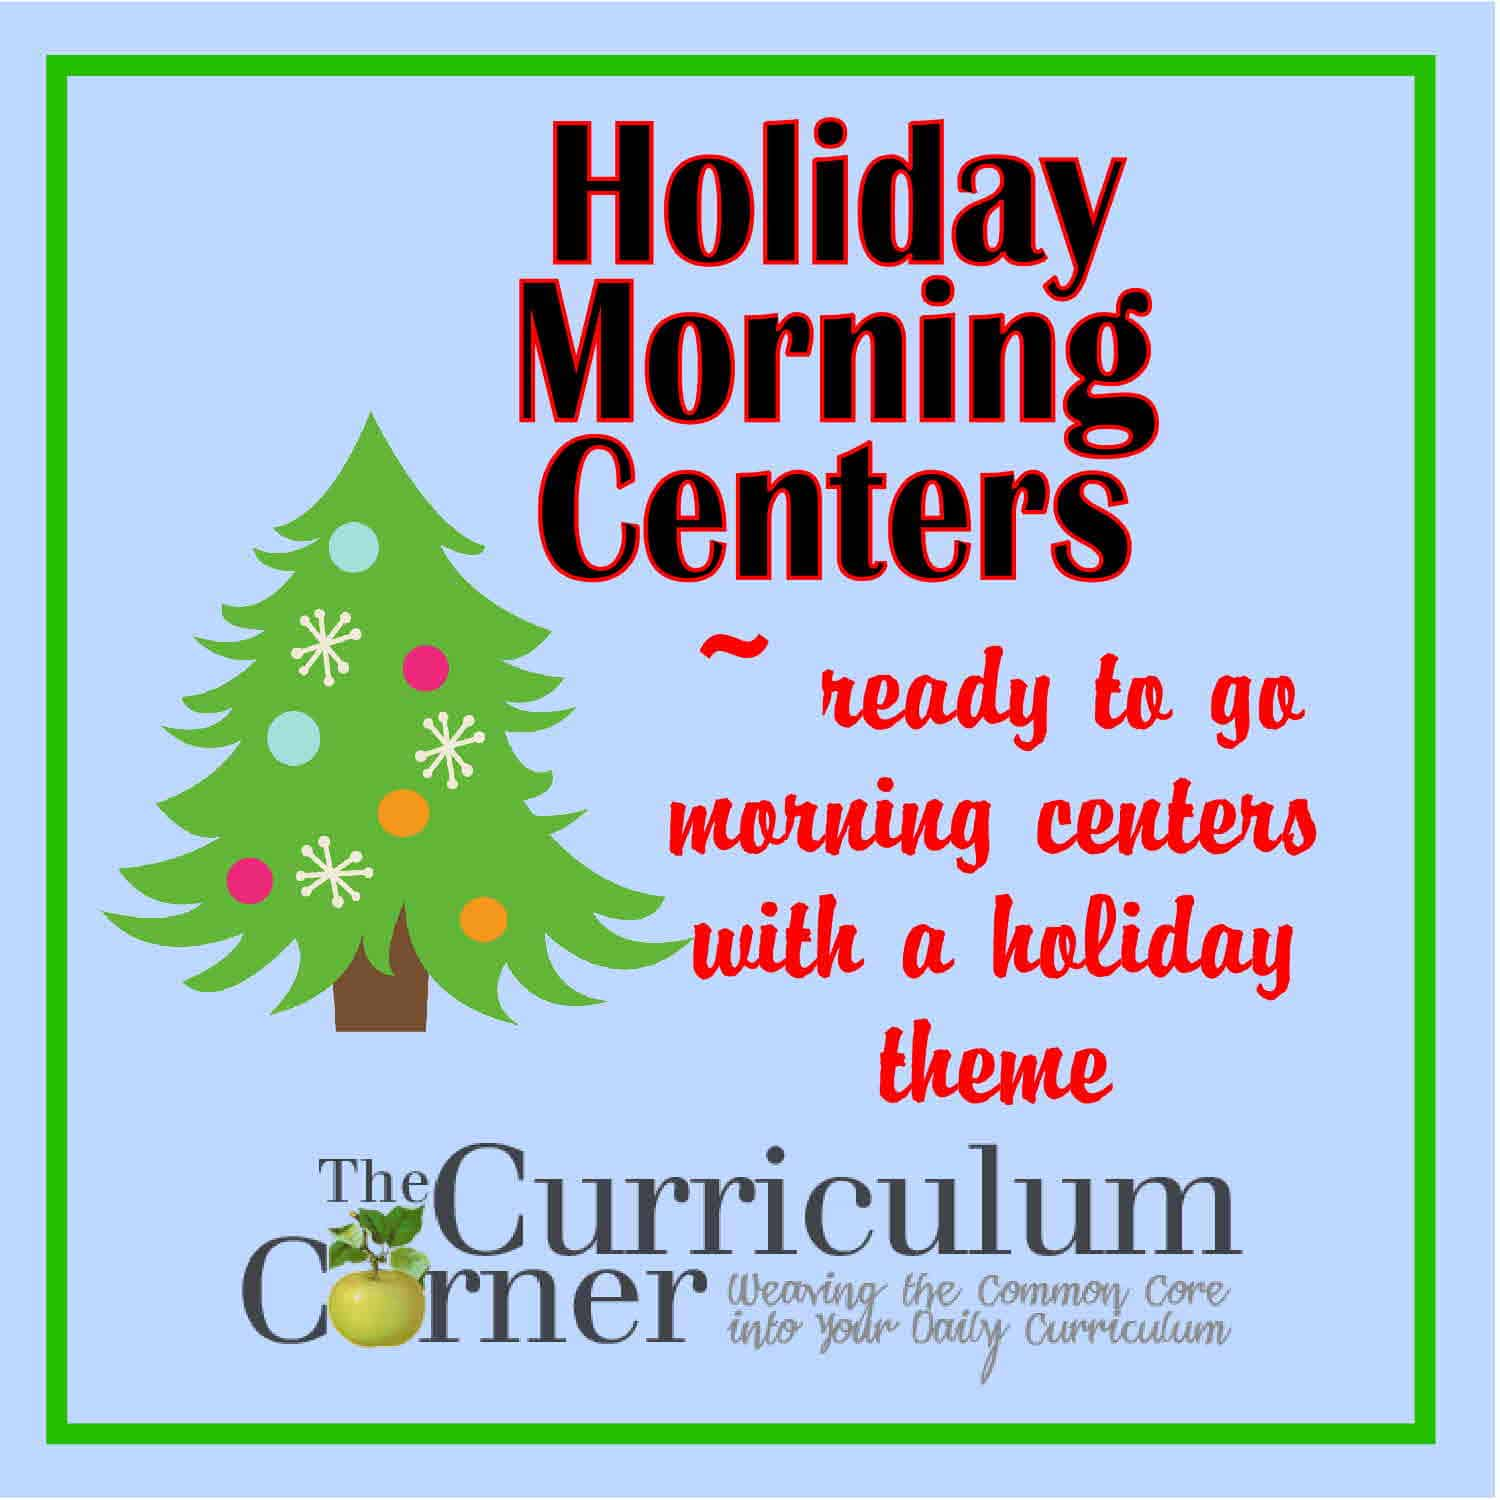 Seasonal Archives - Page 27 of 32 - The Curriculum Corner 123